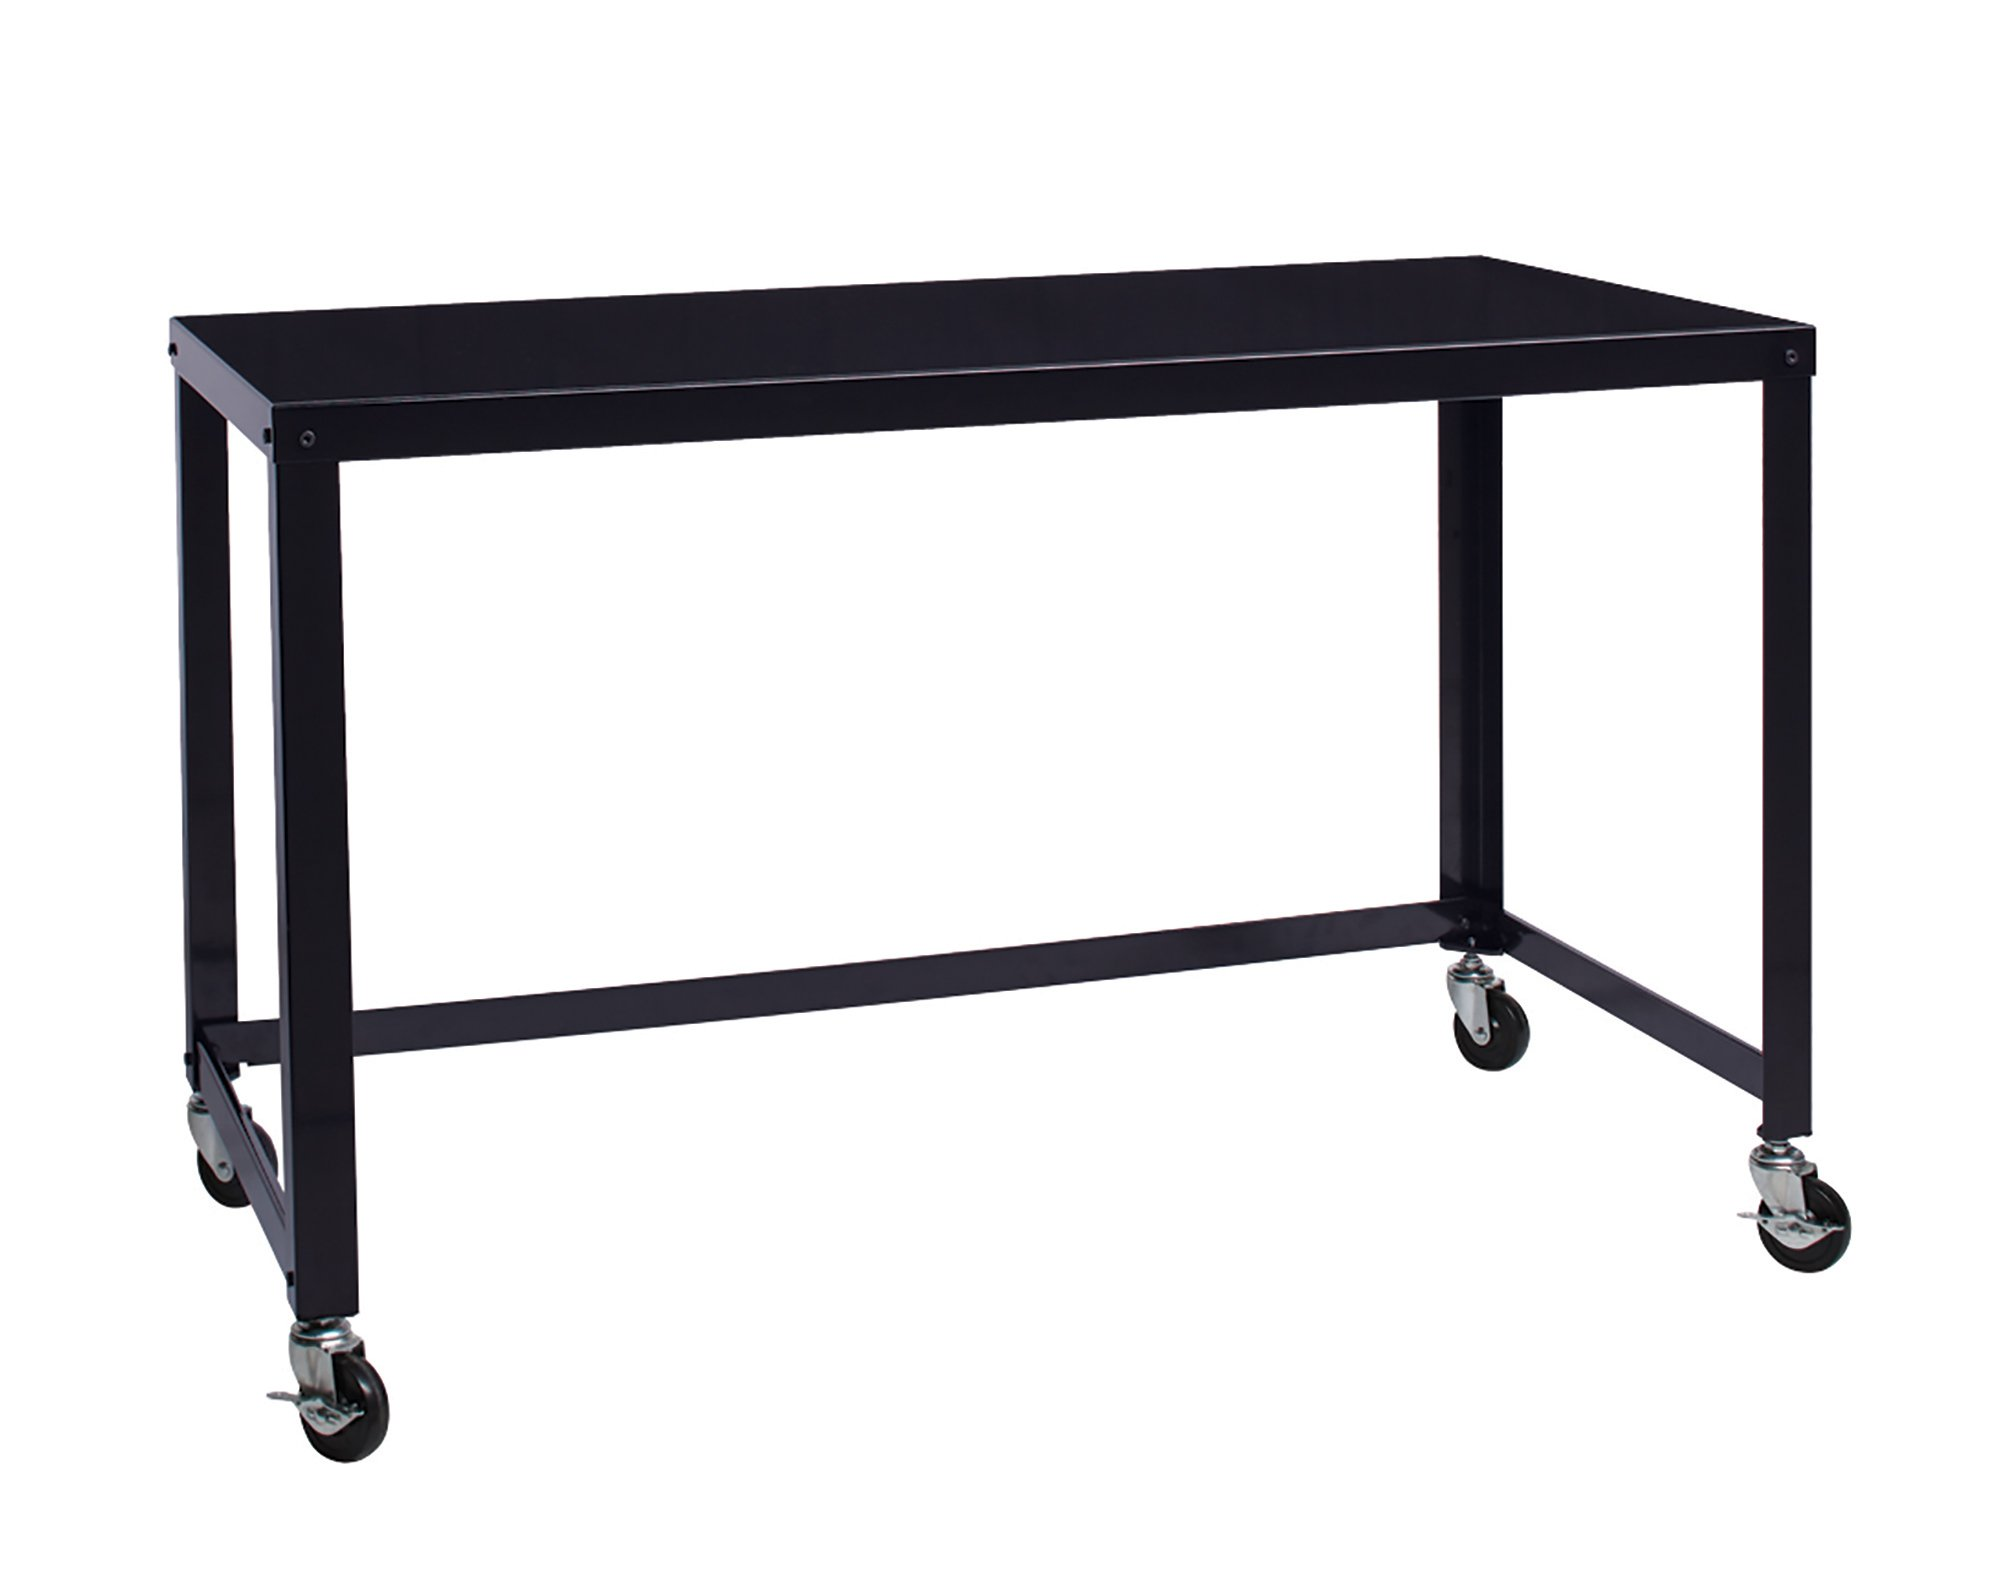 Office Dimensions 21647 Black RTA 48'' Wide Mobile Metal Desk Workstation Home Office Collection, 29.5'' x 48'' x 24'' by Office Dimensions